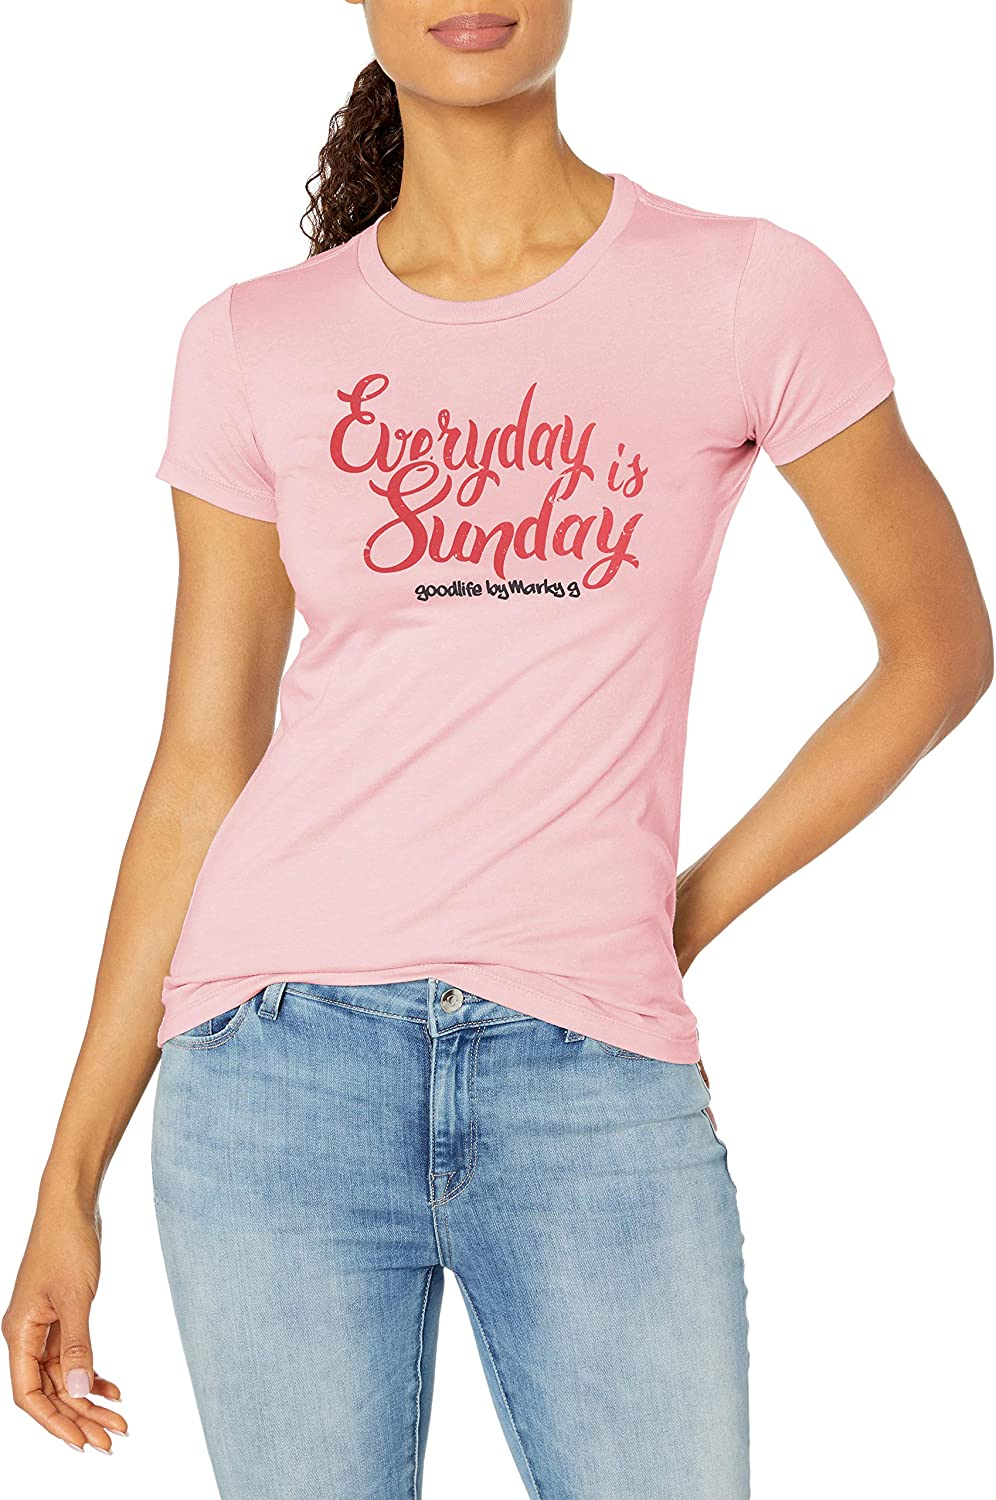 Marky G Apparel Womens Short Sleeve Crewneck Tops Slim Fit T-Shirt with Every Day is Sunday Printed